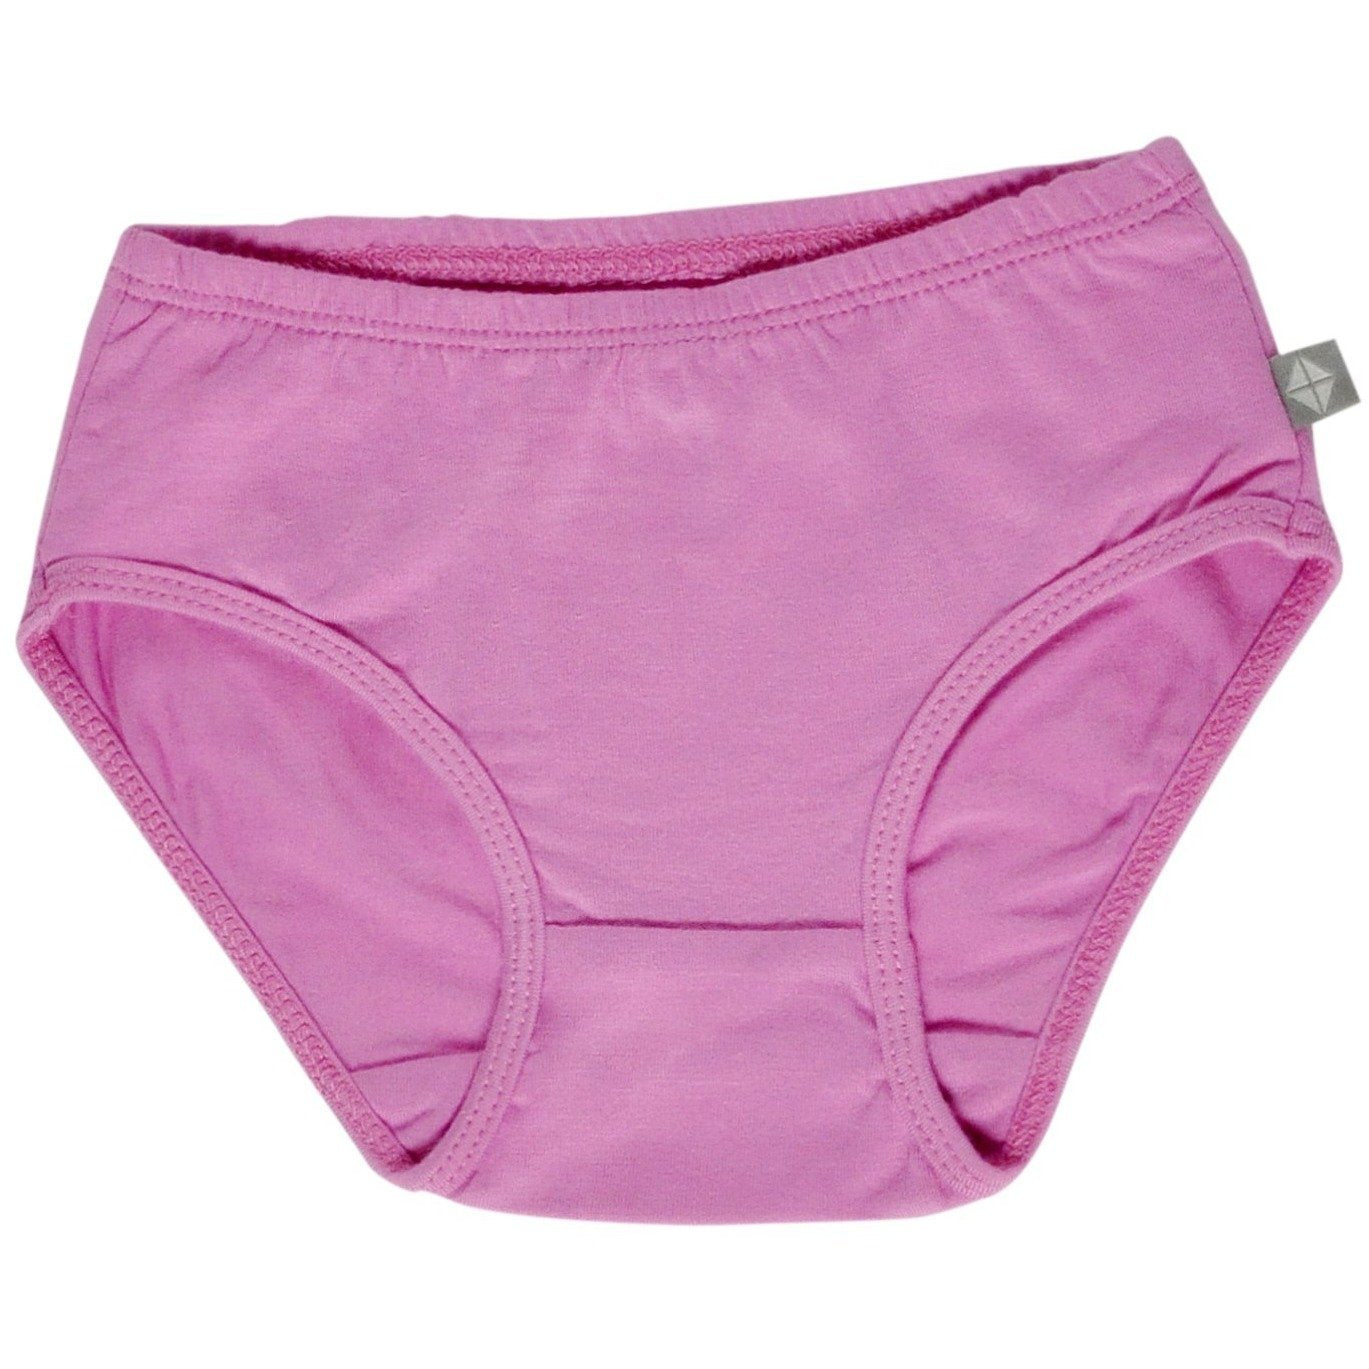 Toddler Bamboo Undies in Blossom